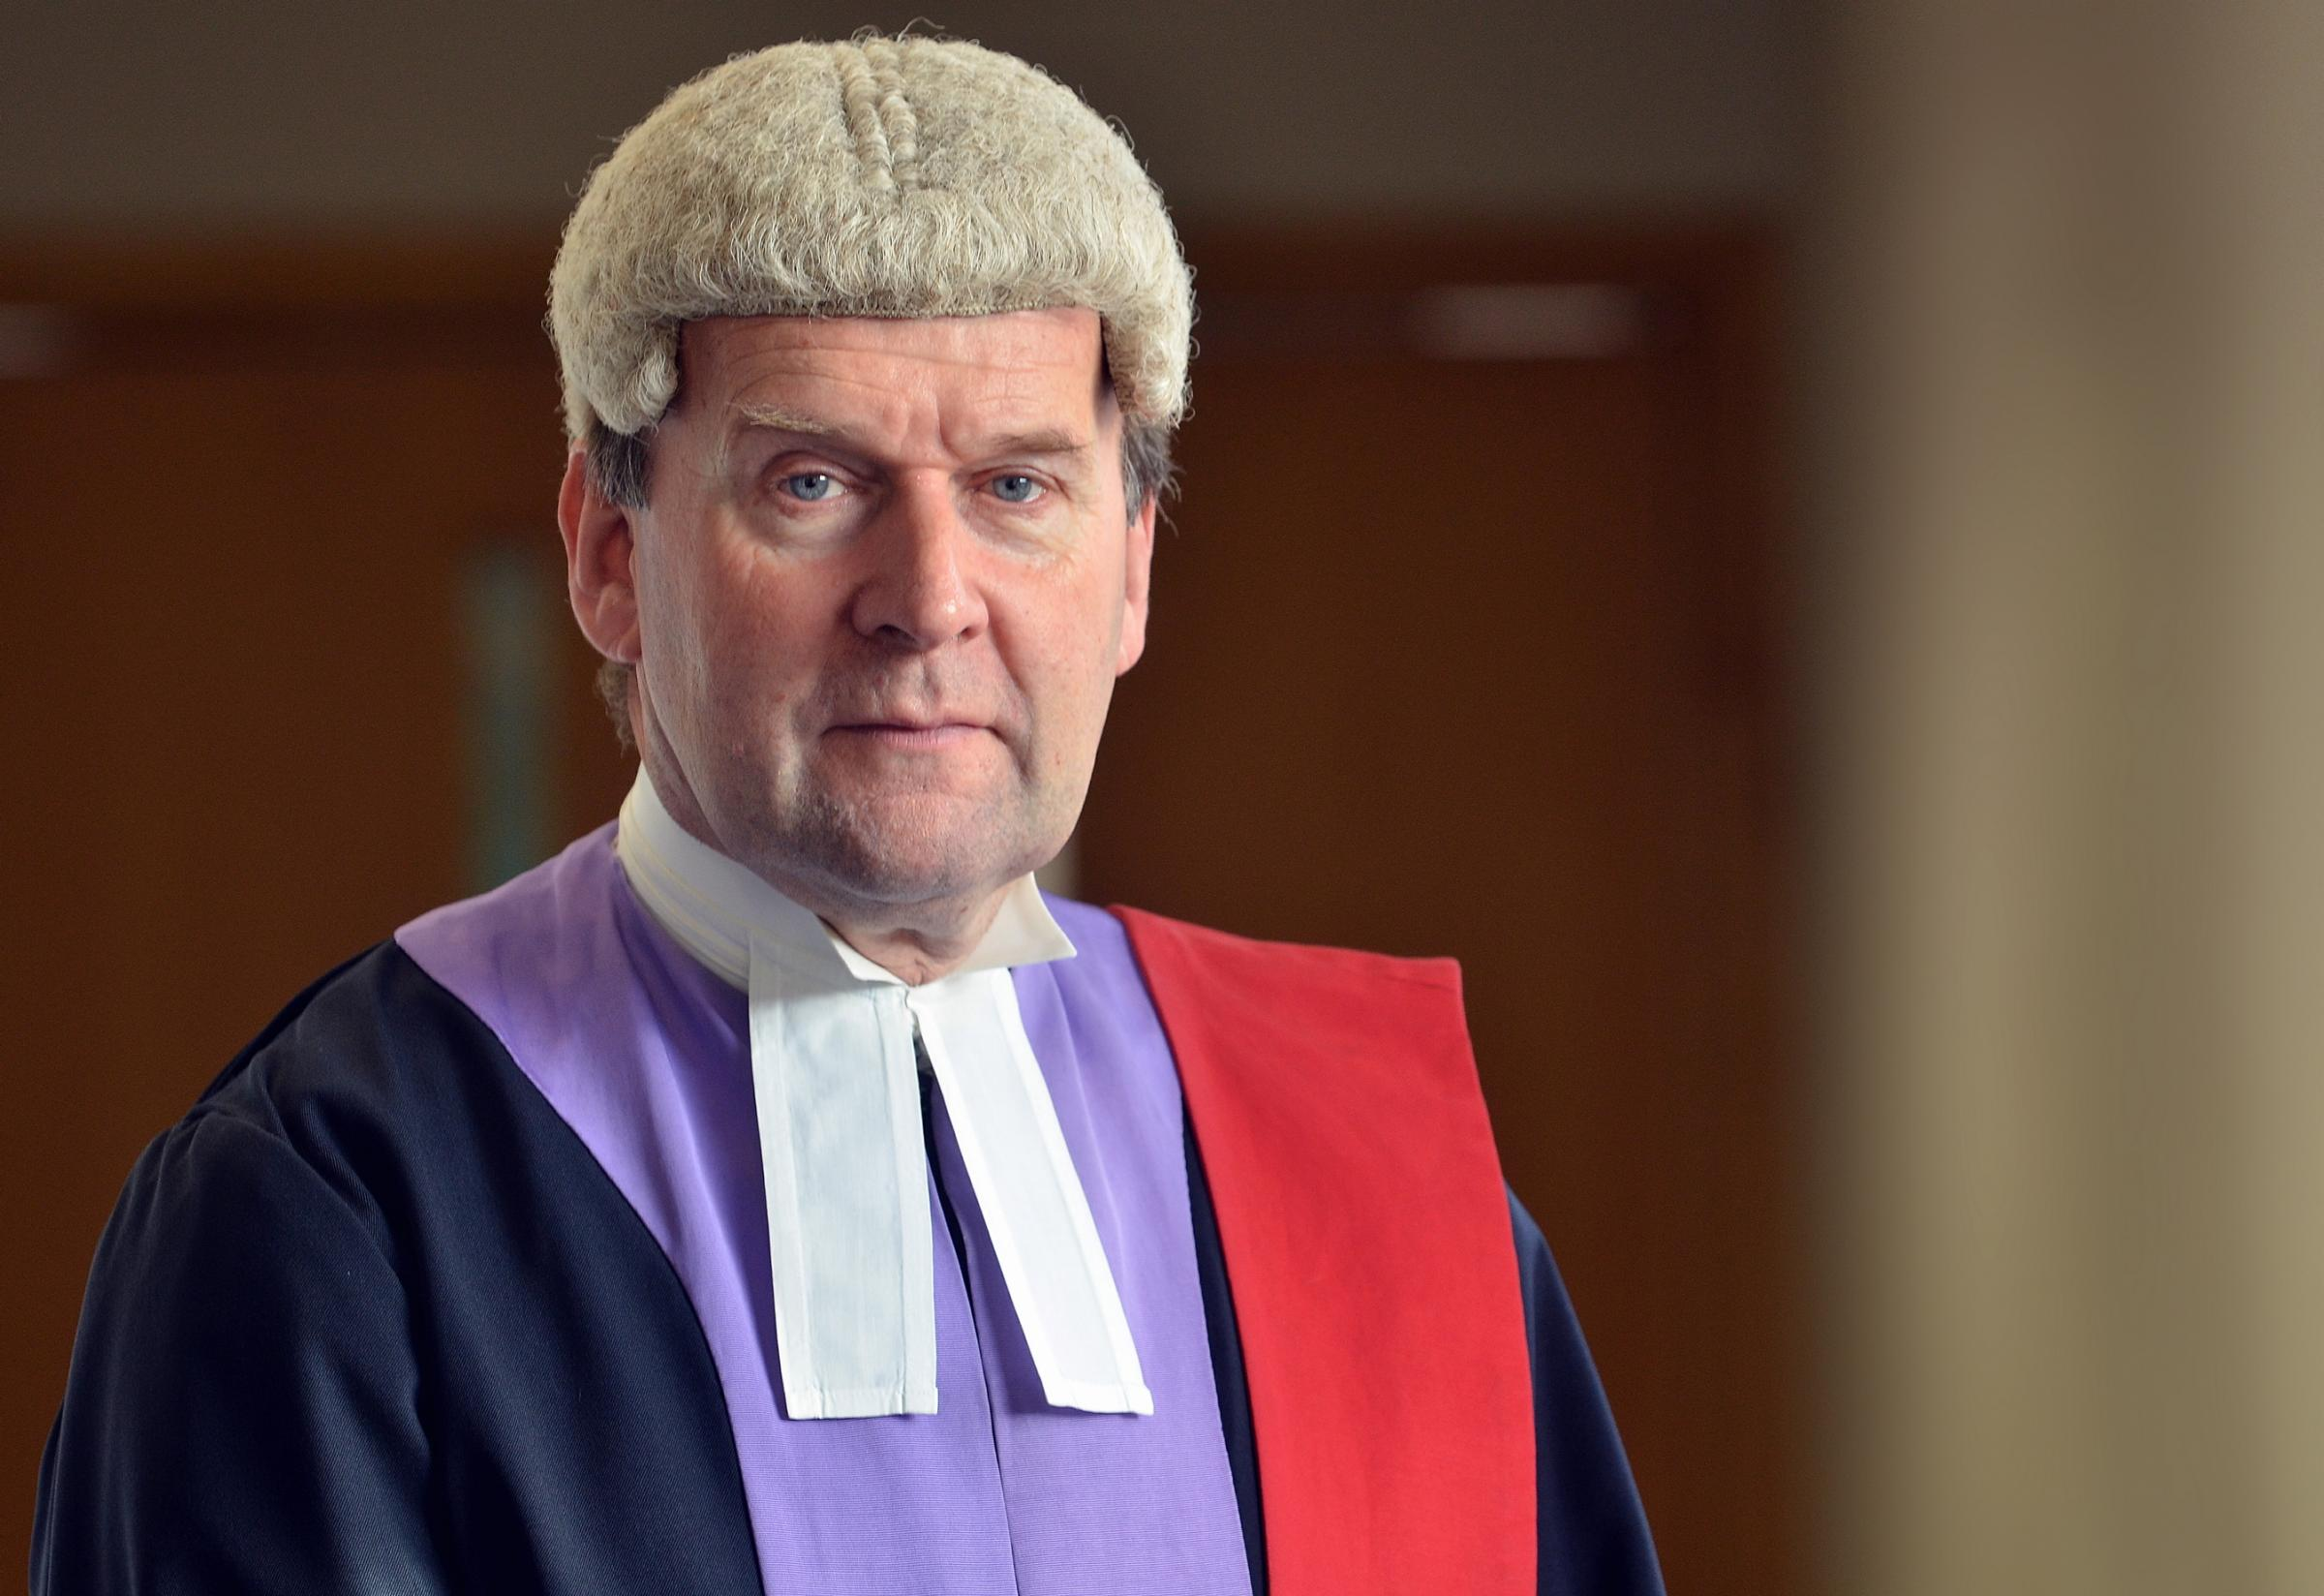 Bradford MP spends a day in court with top judge to gain insight into justice system